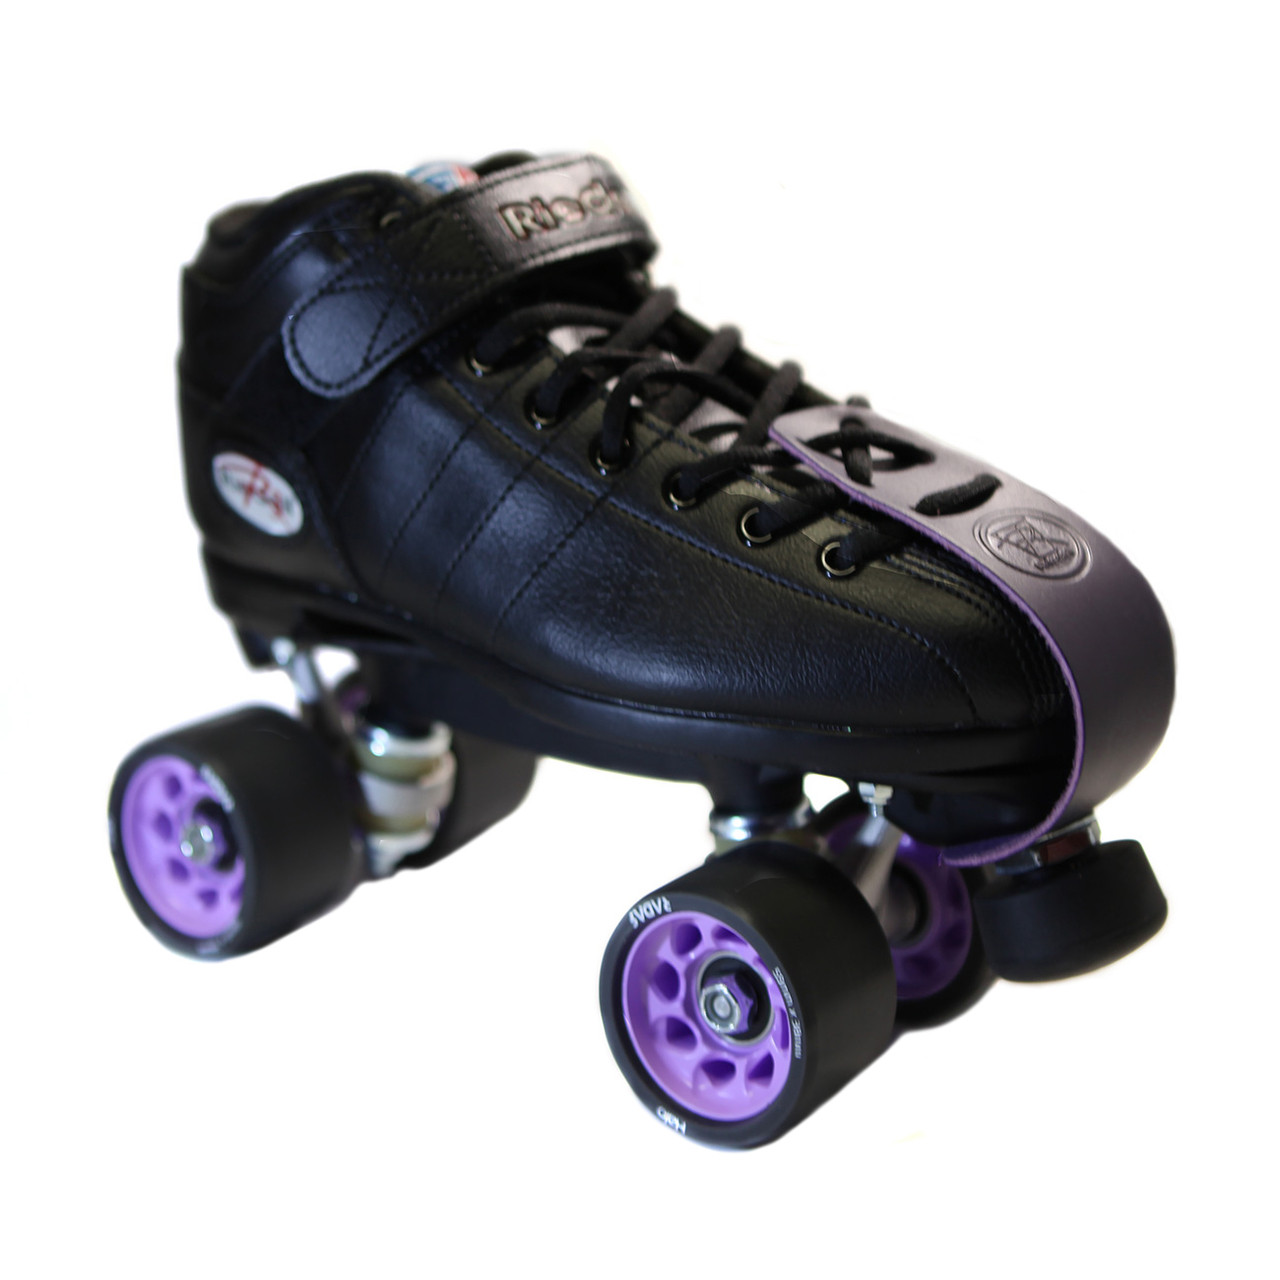 Yellow Demon Roller Skate package 95a Rink setup Riedell R3